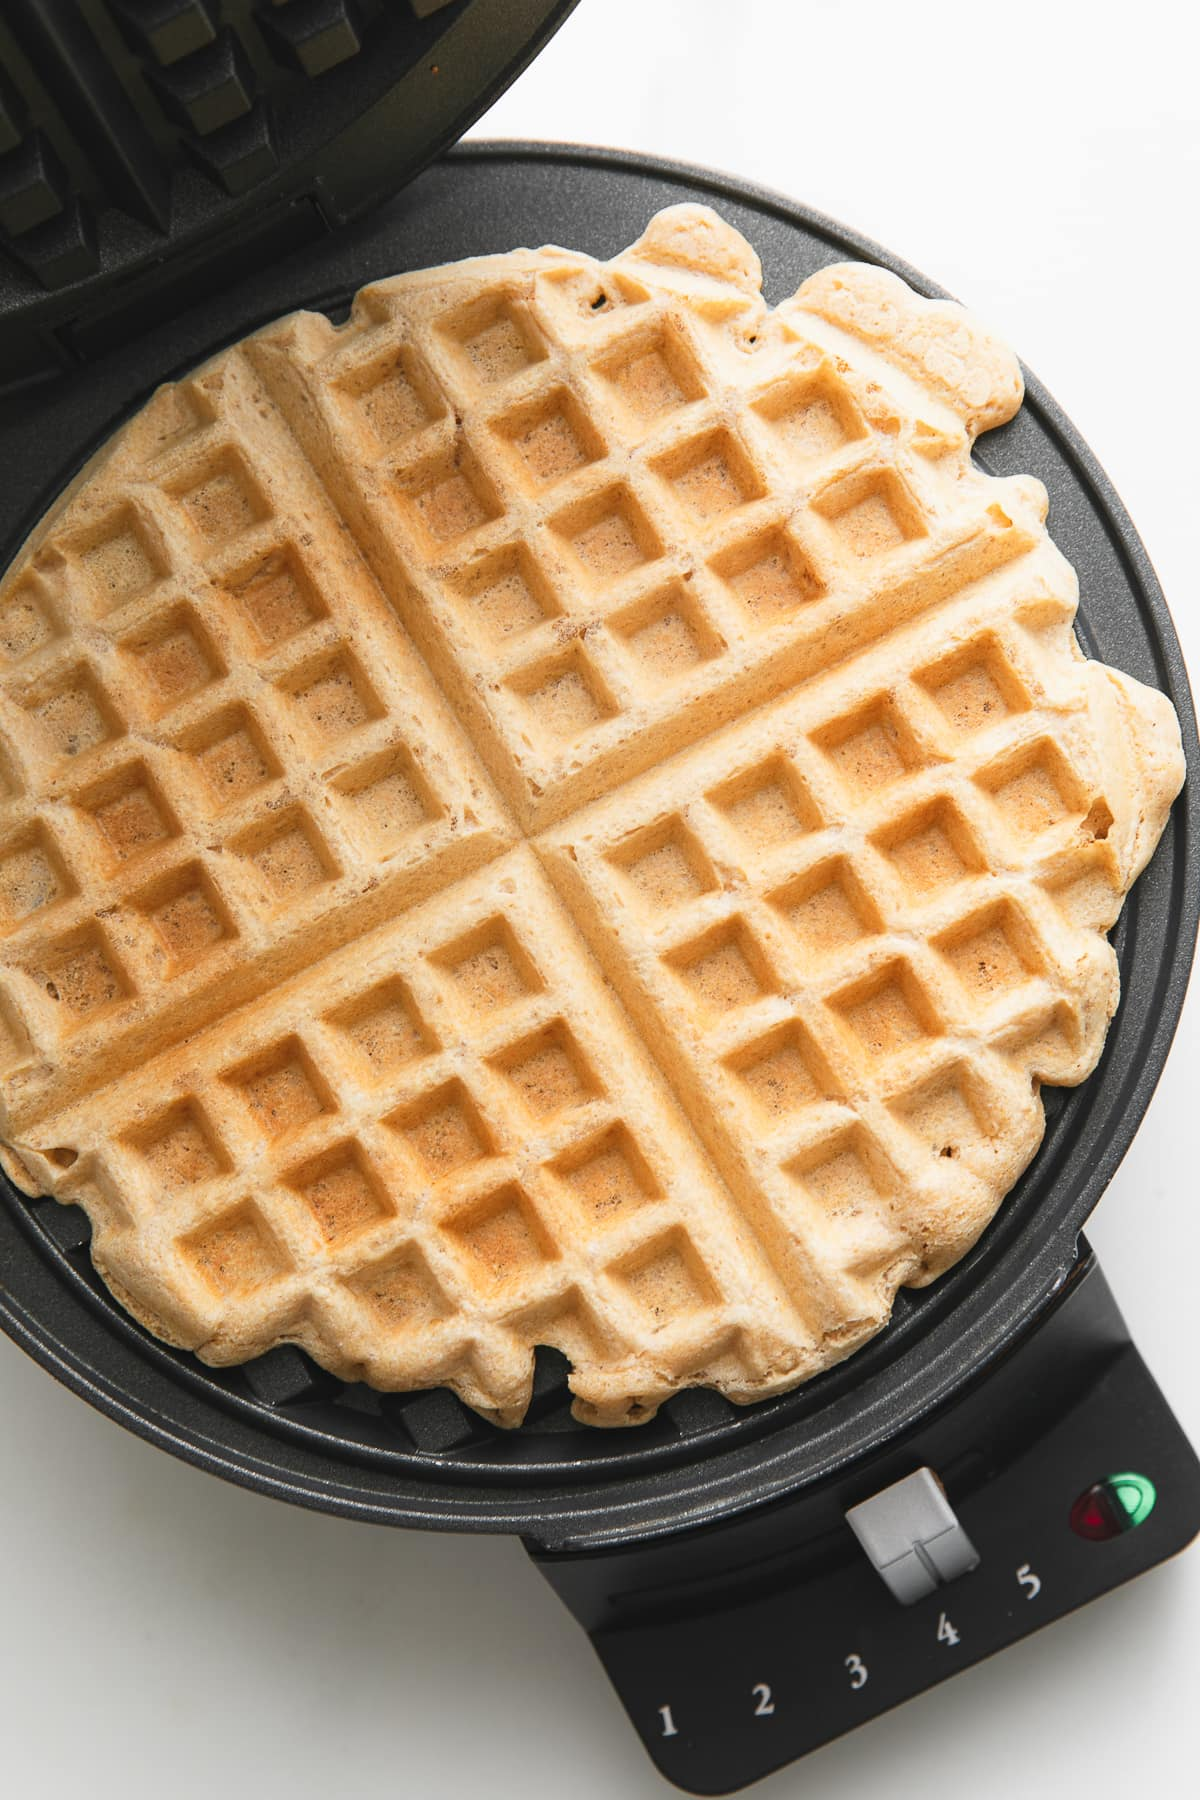 top down view of vegan waffle on waffle iron.